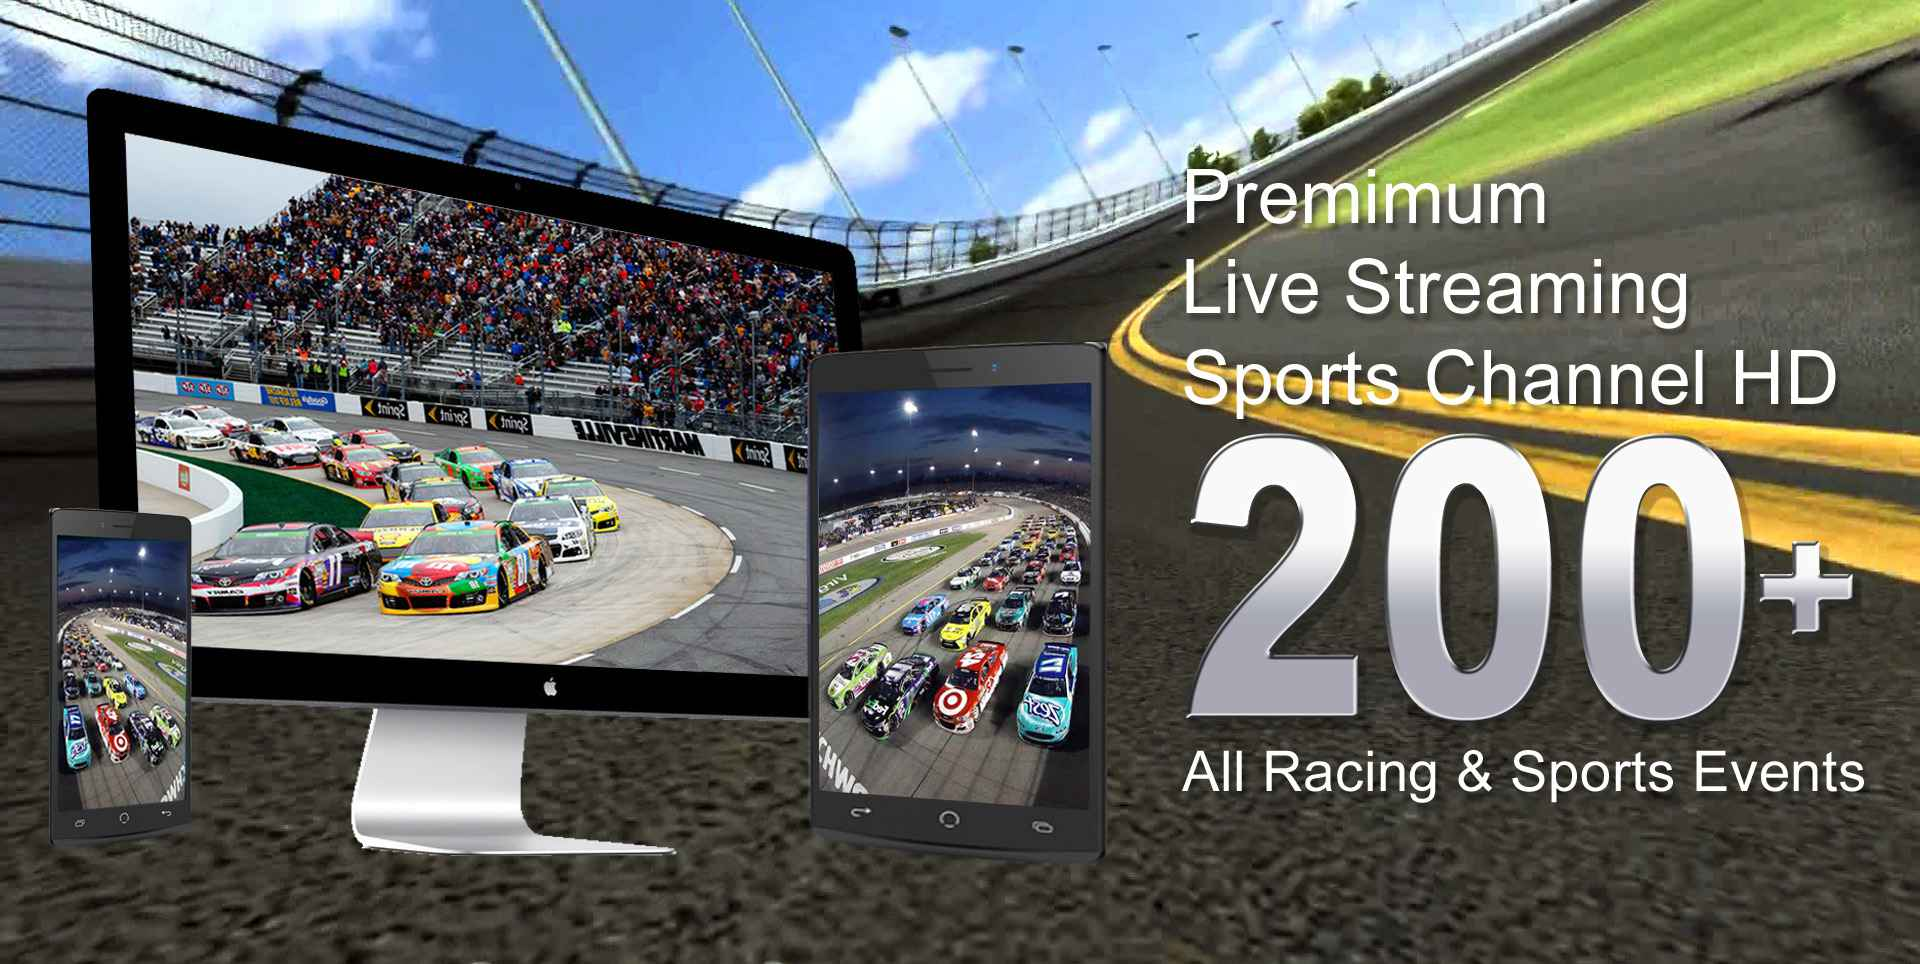 nascar%20careers%20for%20veterans%20200%20live%201 Watch Nascar Careers for Veterans 200 Race Online